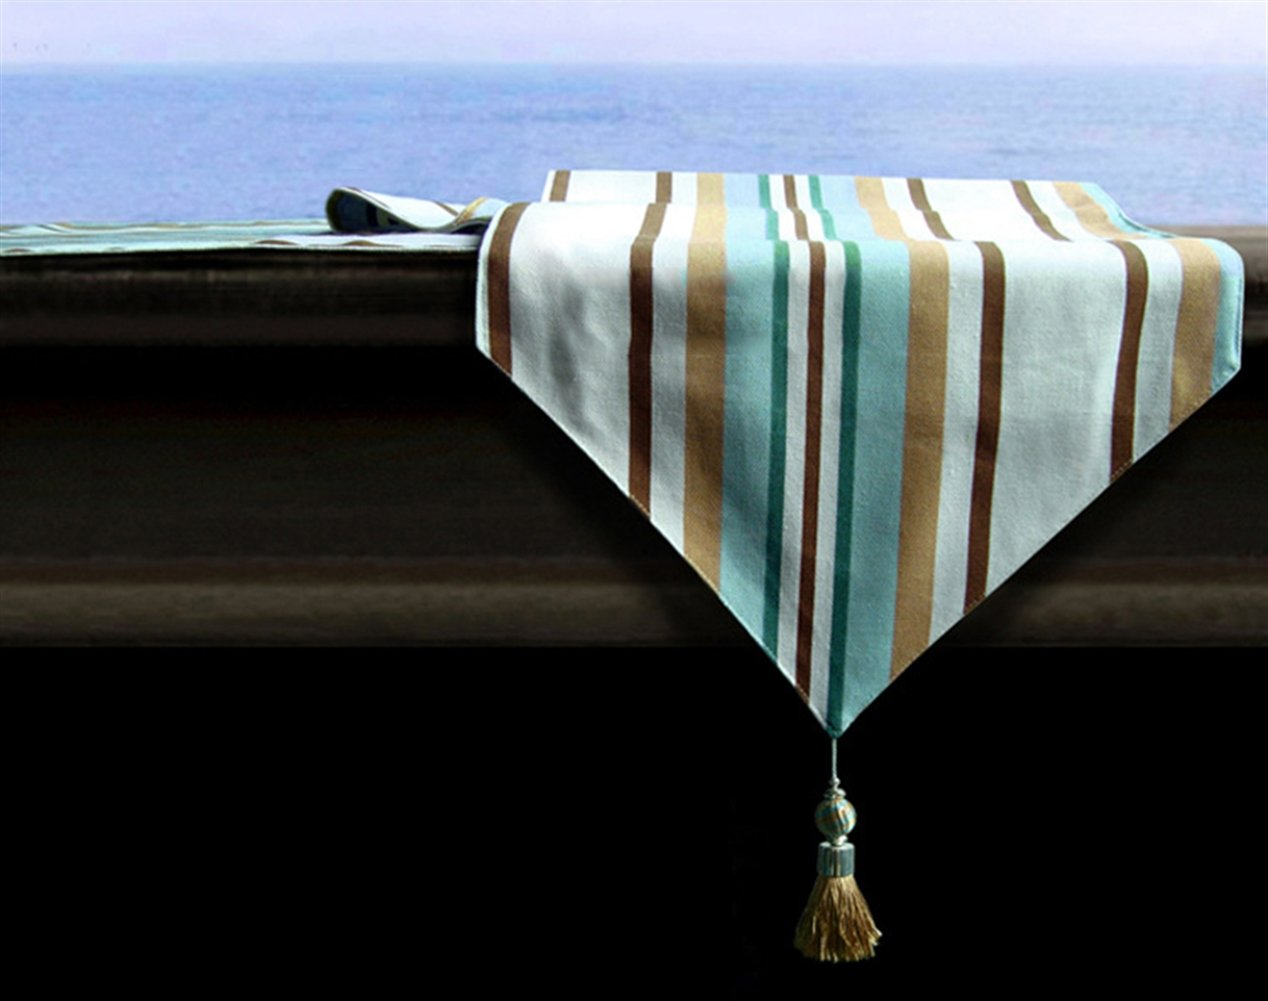 Liveinu Handmade Table Runner with Tassel Triangular Decorative Burlap Tablecovers for Dinner Parties, Spring Wedding & Everyday Use Stripe Pattern Blue 46''x12''